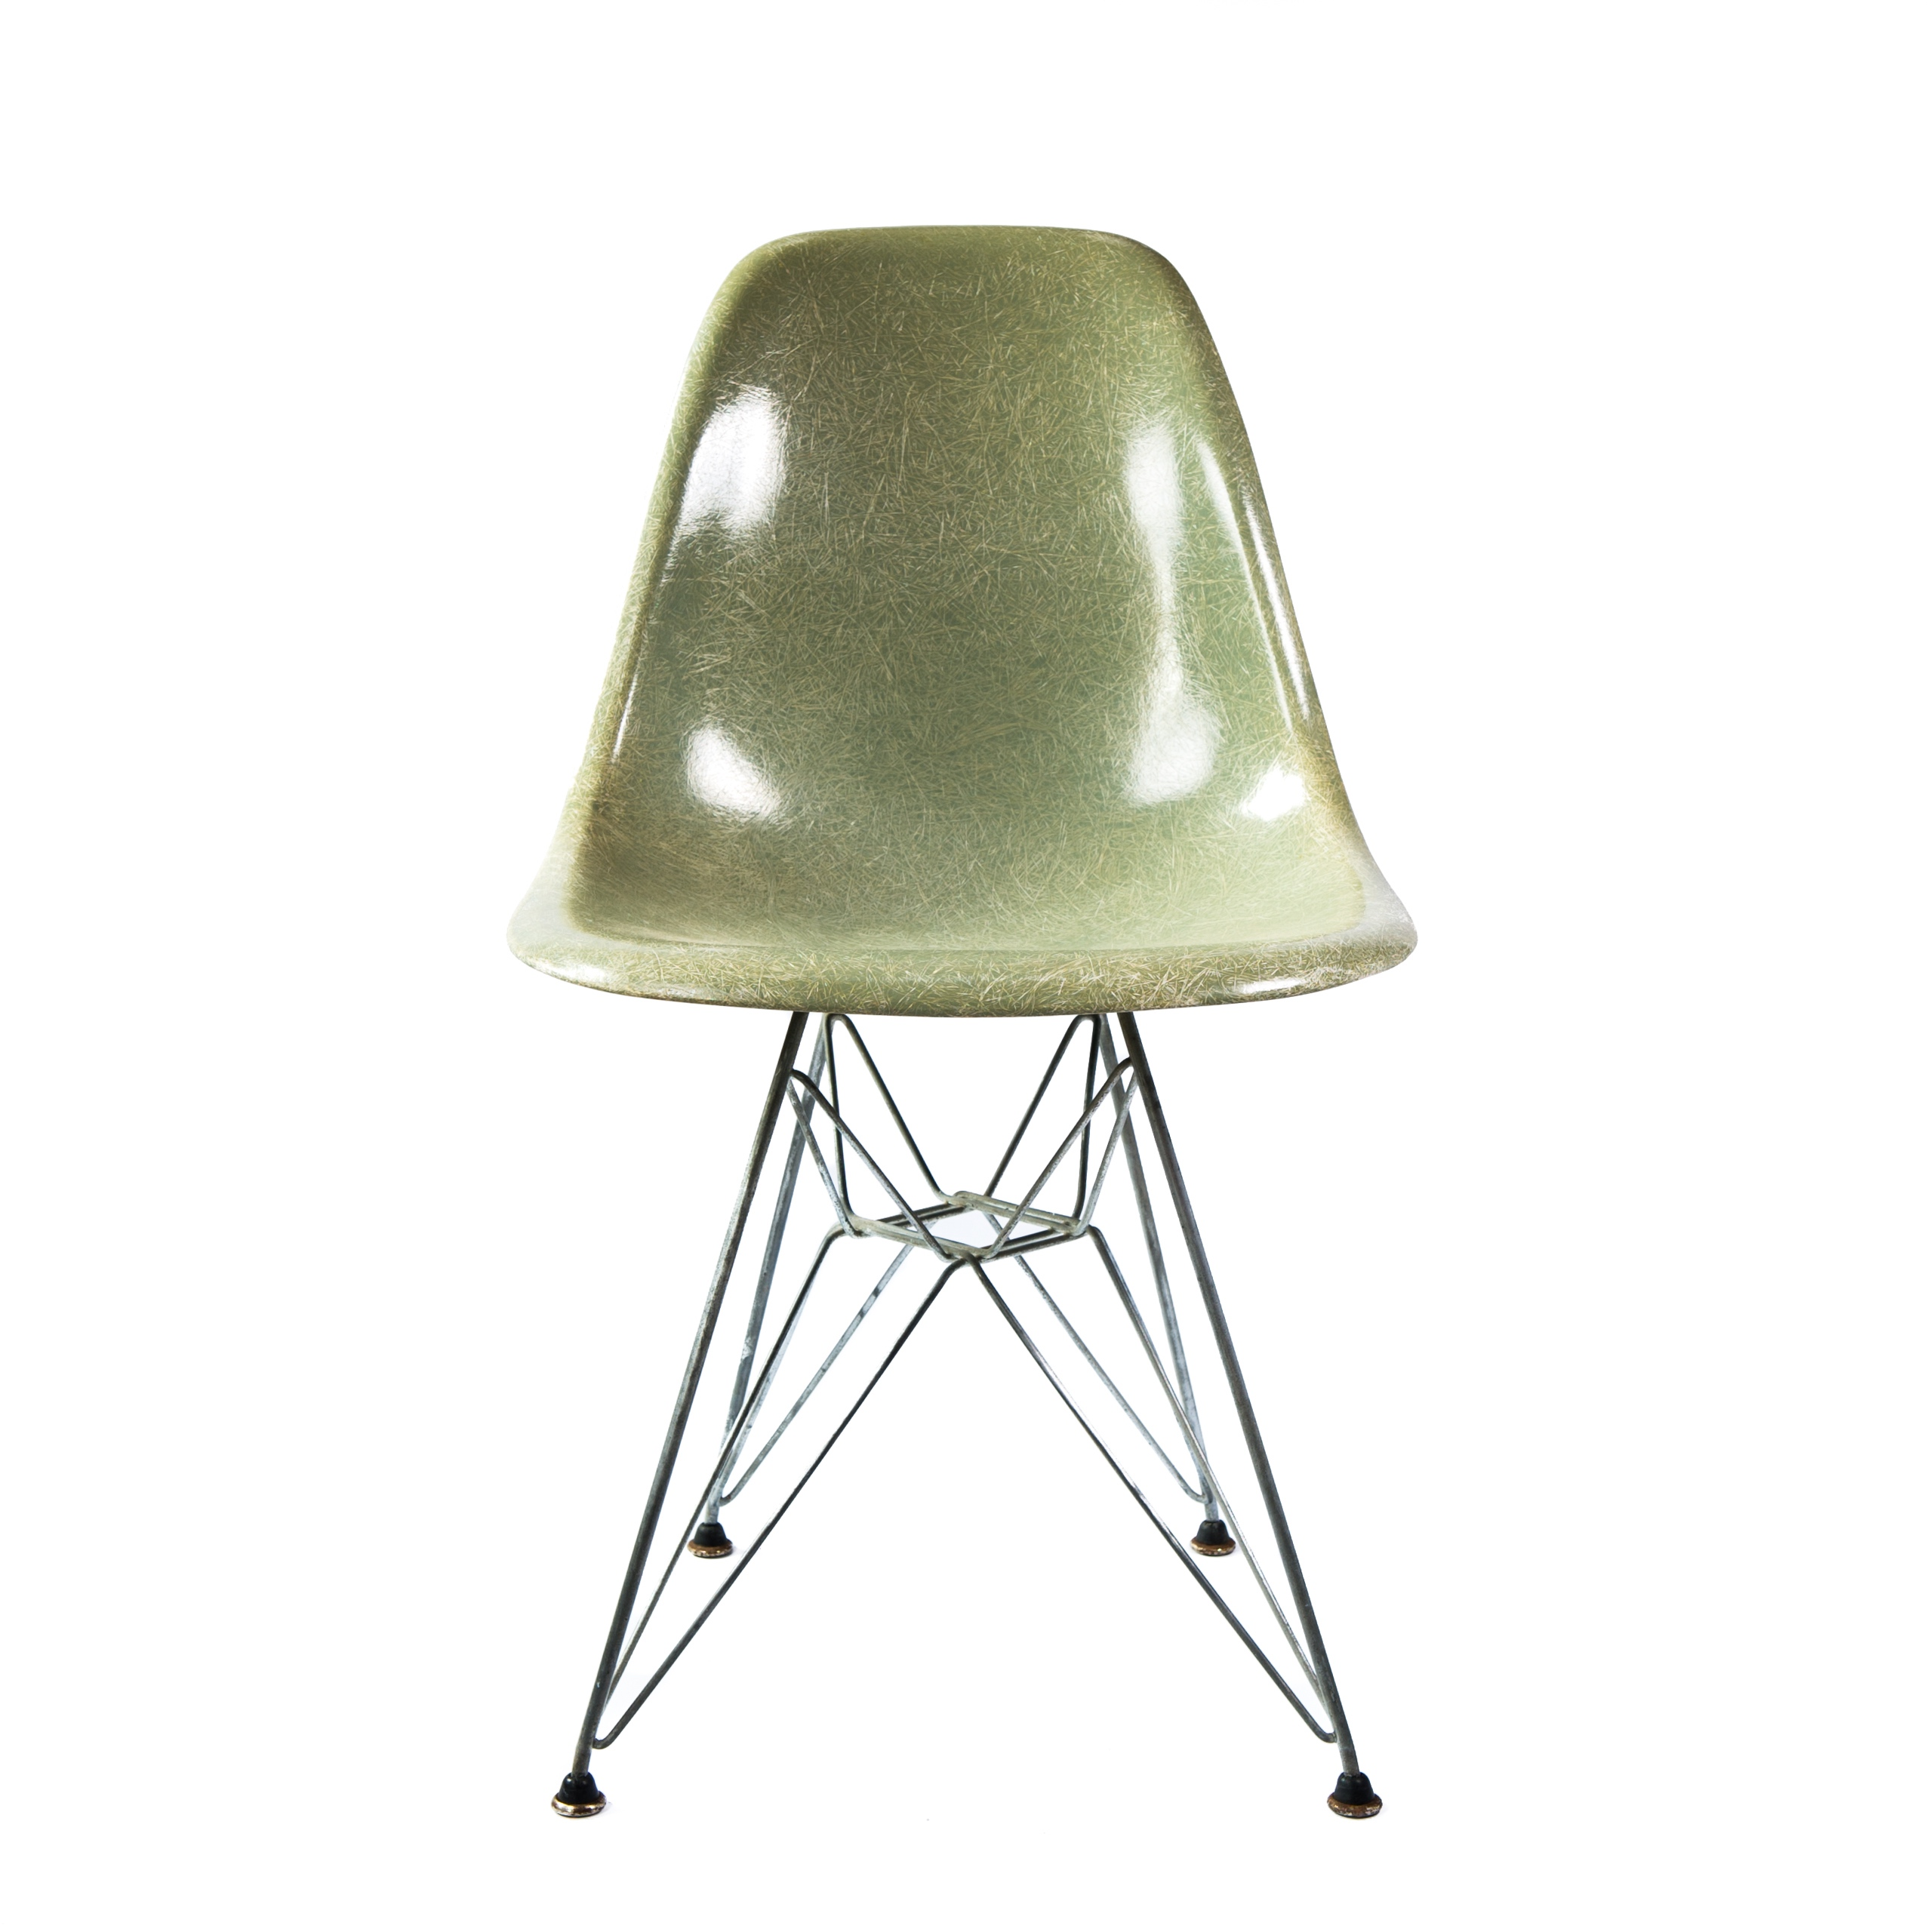 Sea Foam Green 1950s Eames DSR Eiffel Side Chairs in excellent condition